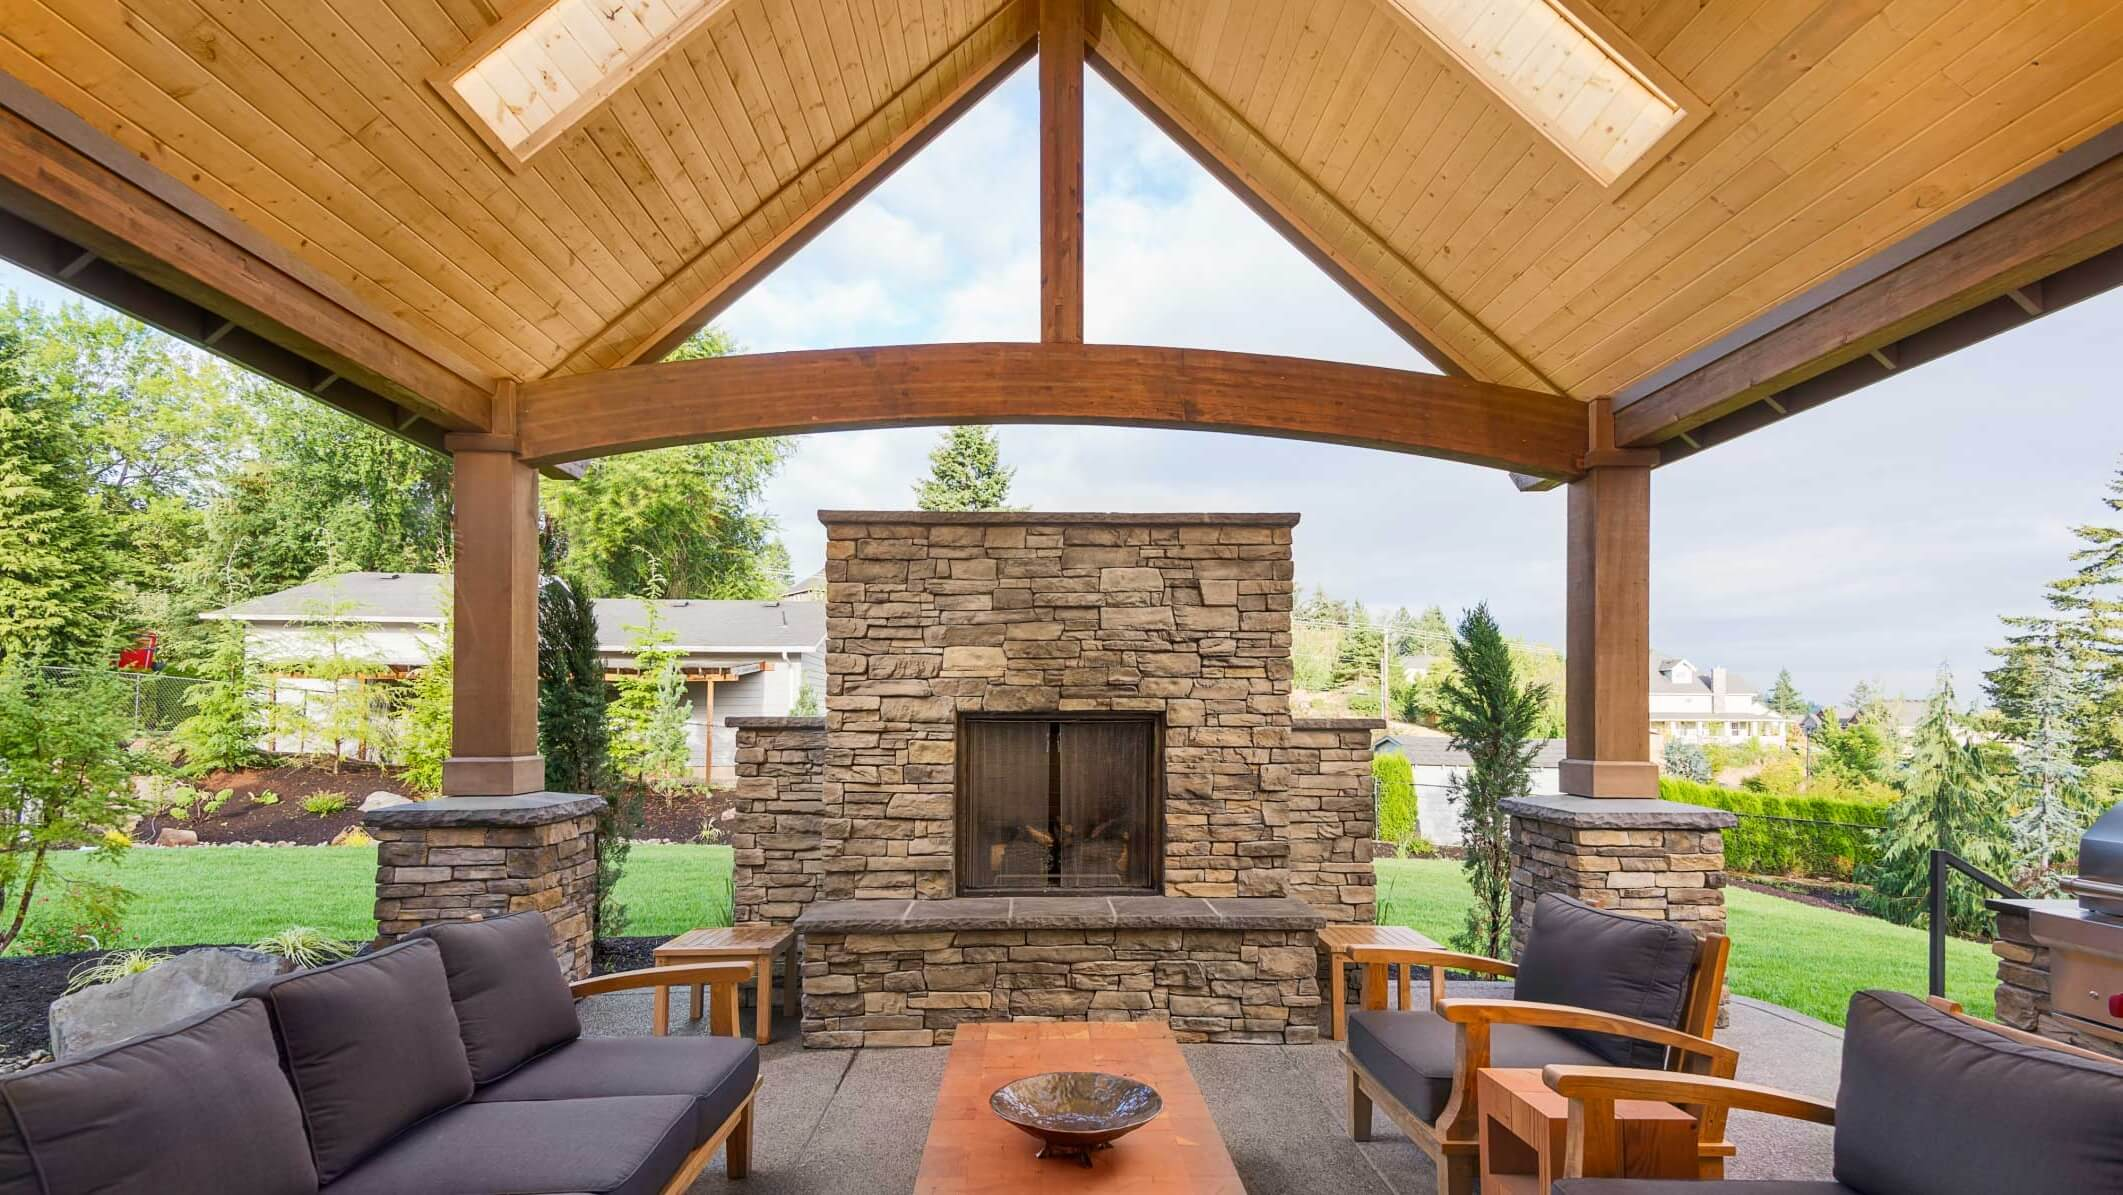 Make Your Patio Perfect with the Right Roof - Interior ... on Open Backyard Ideas id=51015